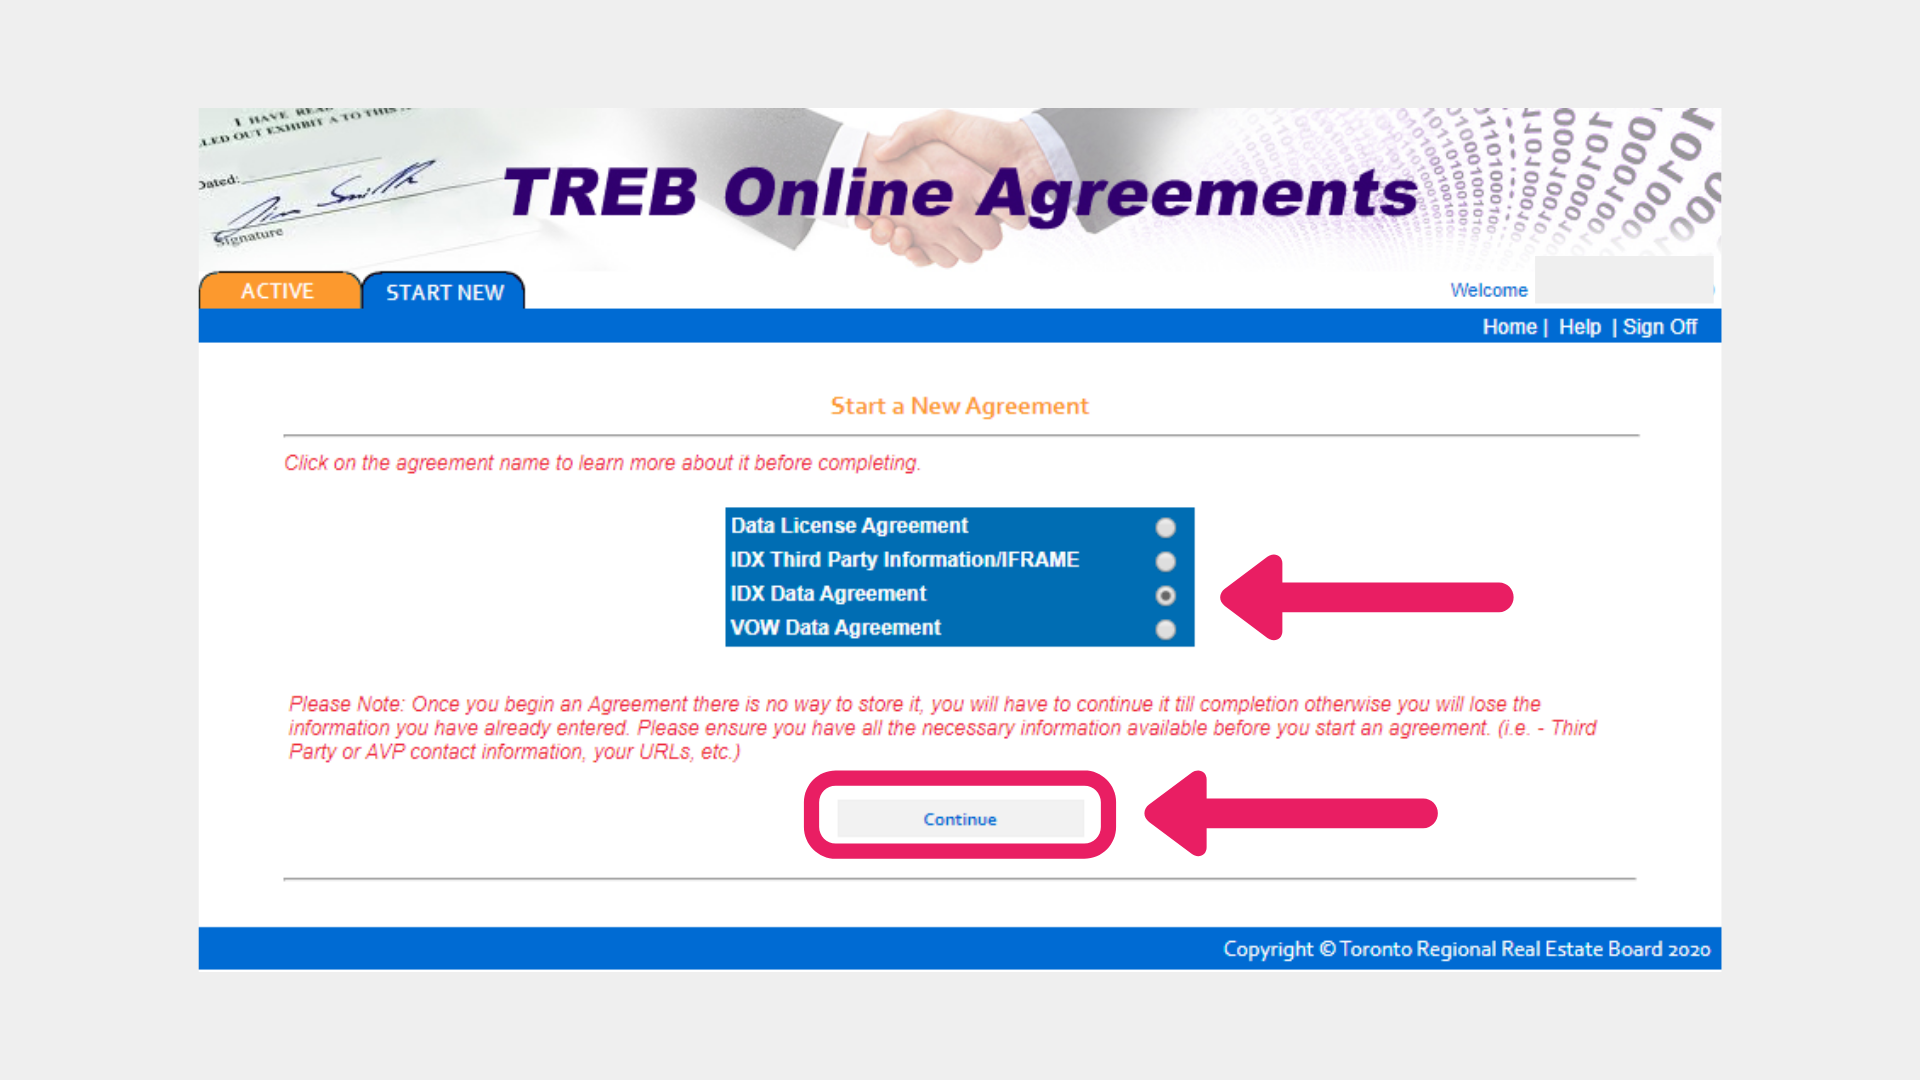 TRREB_Online_Agreements_-_Guideline__17_.png